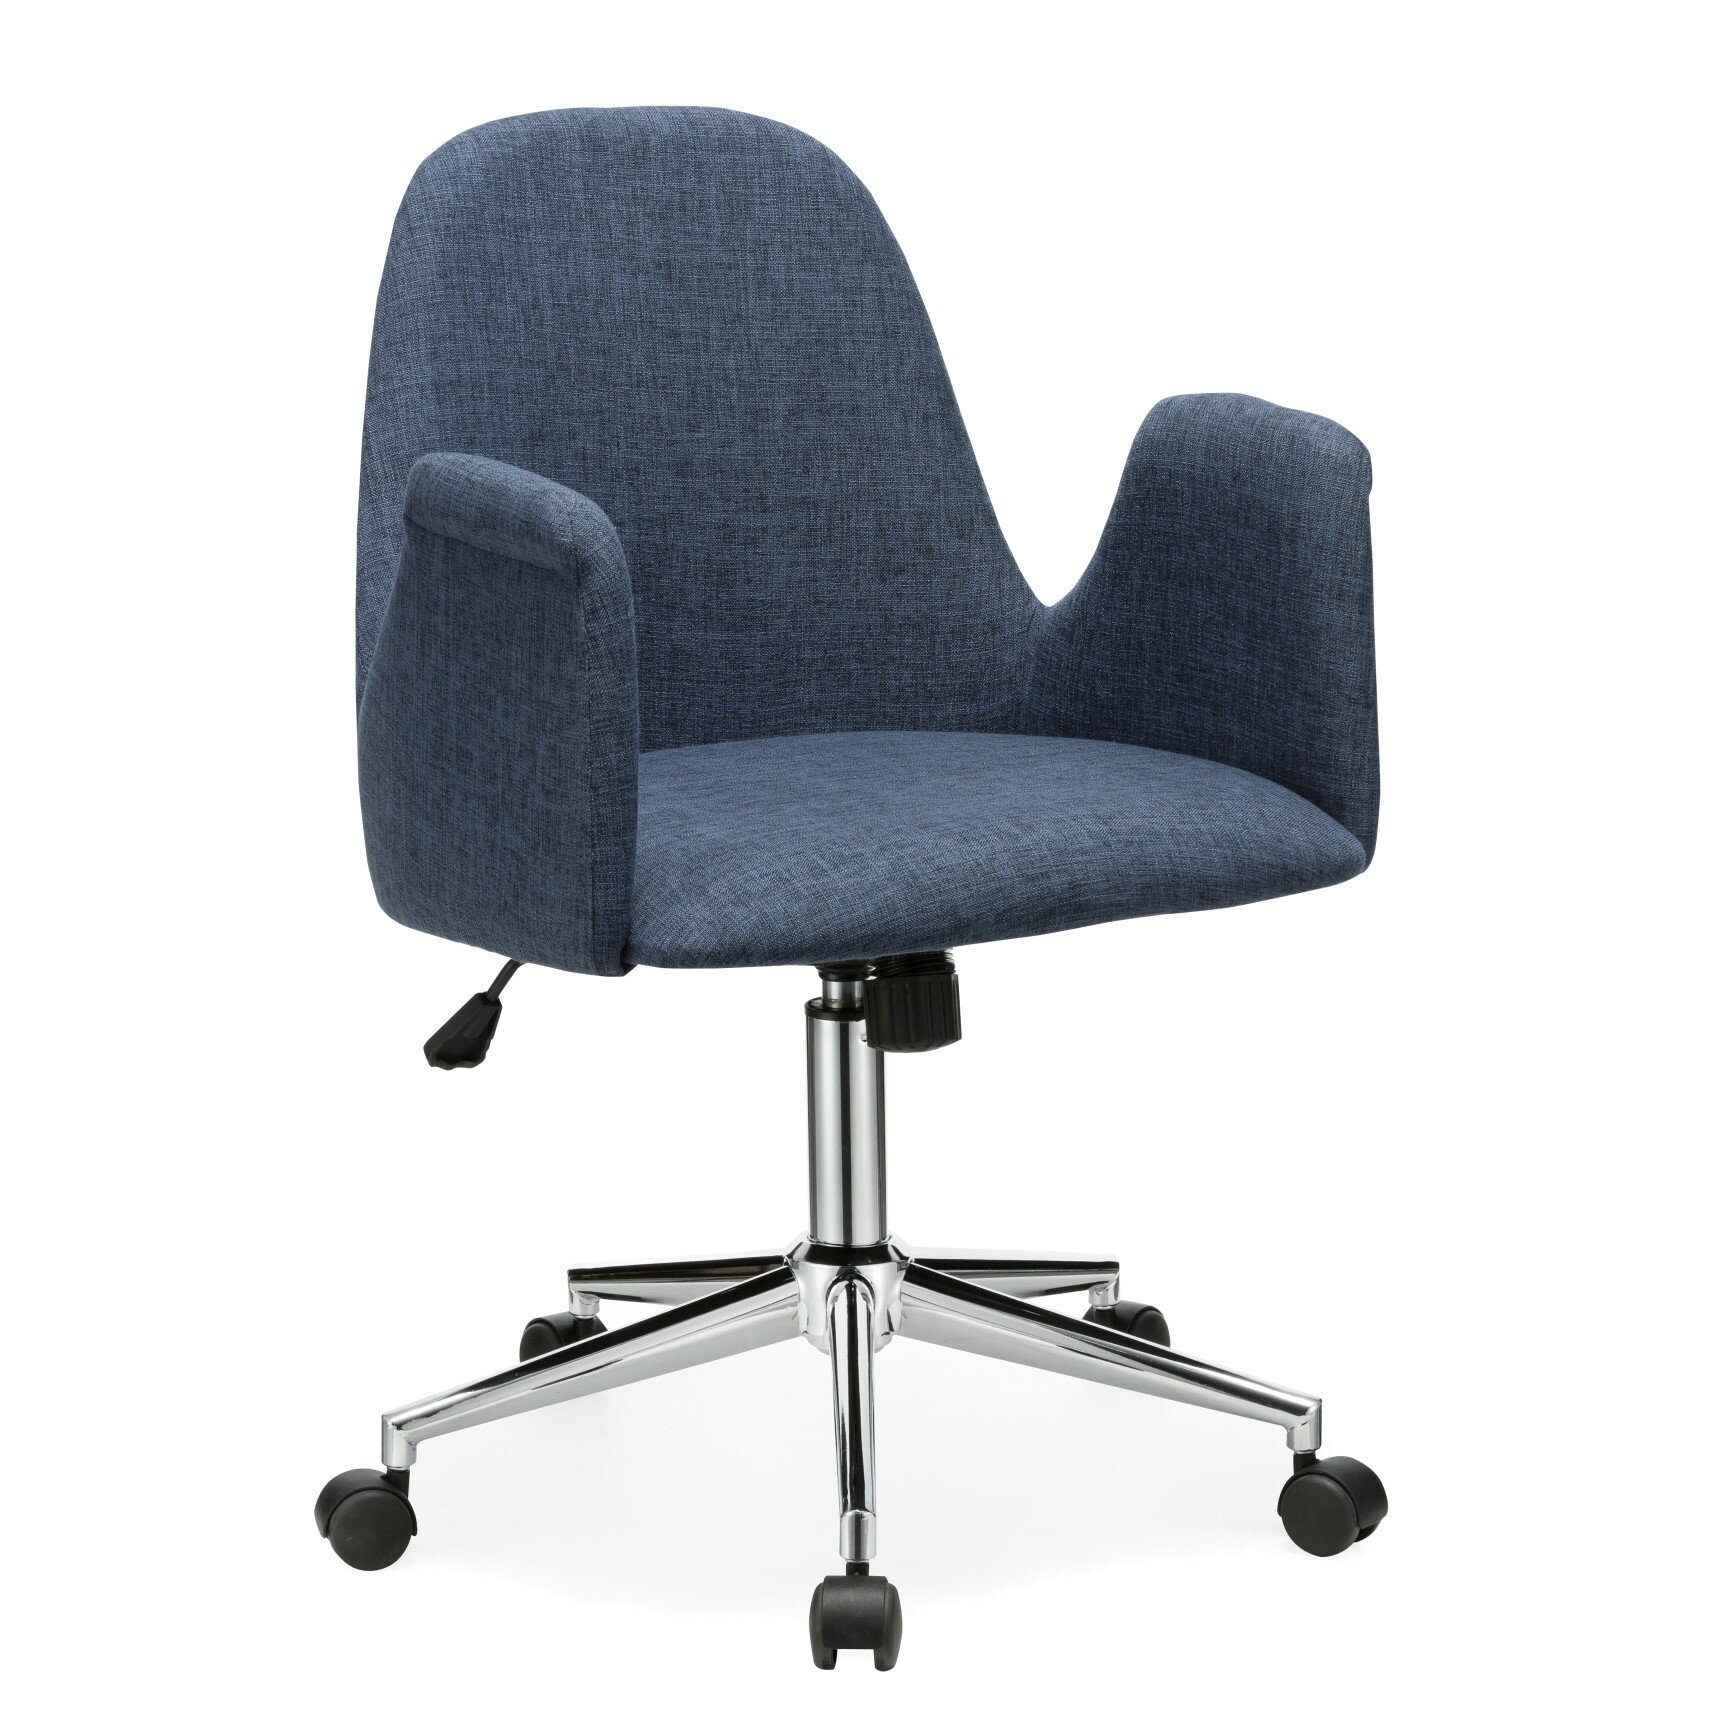 Porthos Home Orwell Office Chair With Arms & Reviews